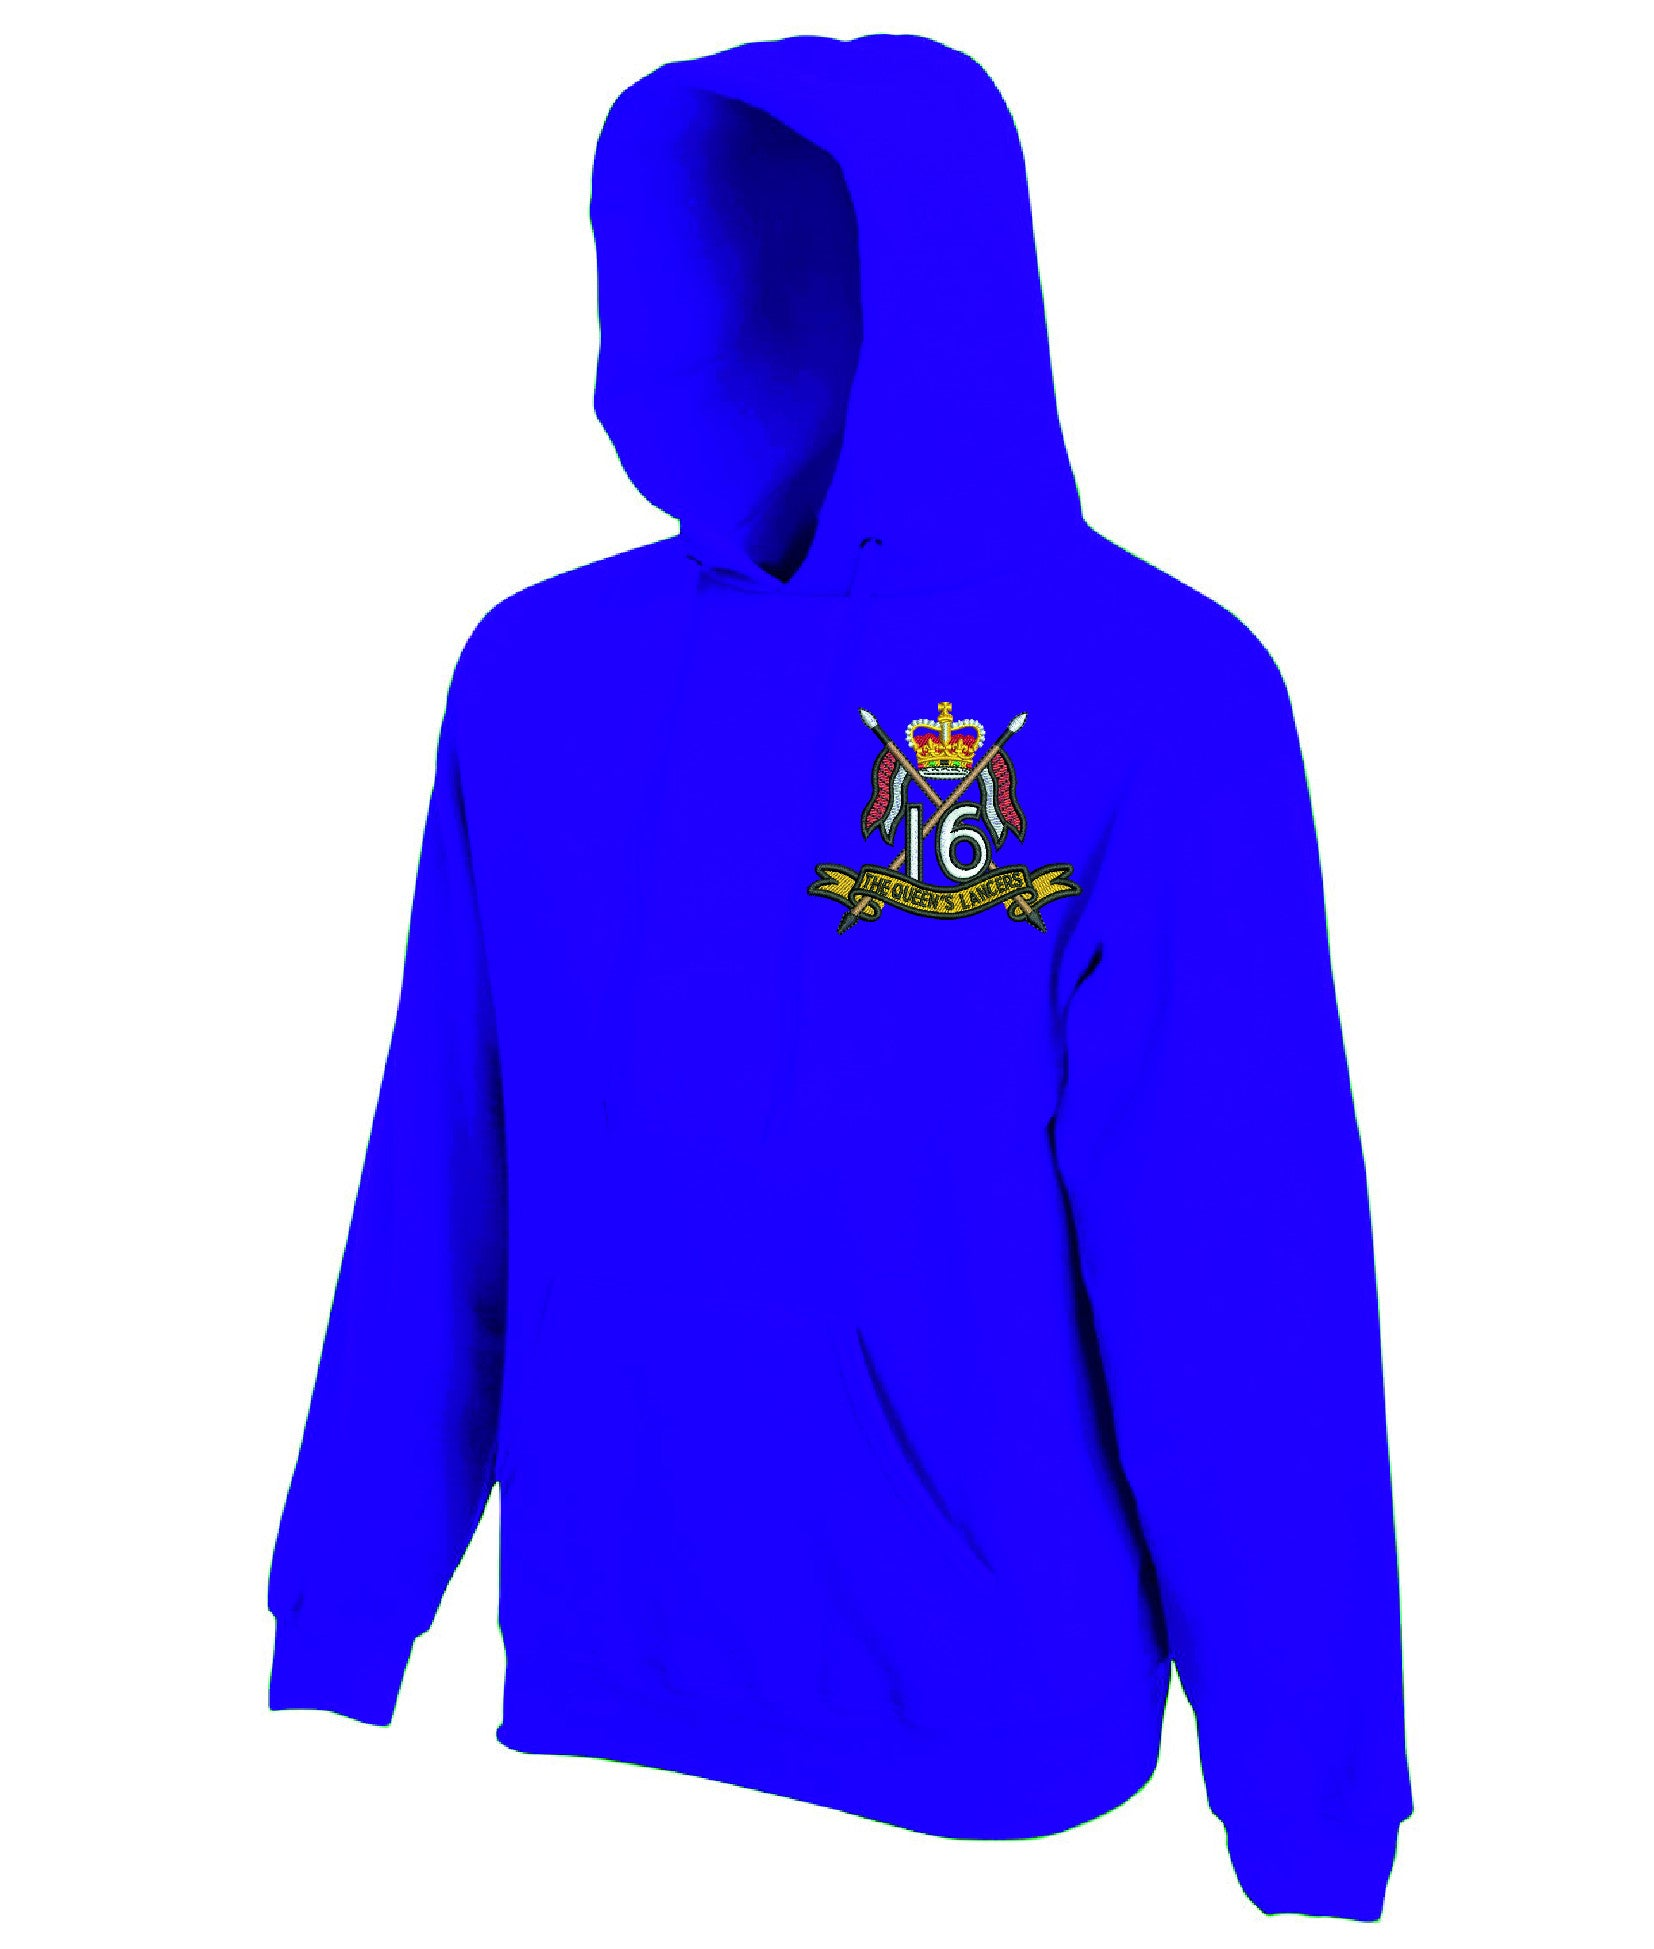 16th/5th The Queen's Royal Lancers hoodie